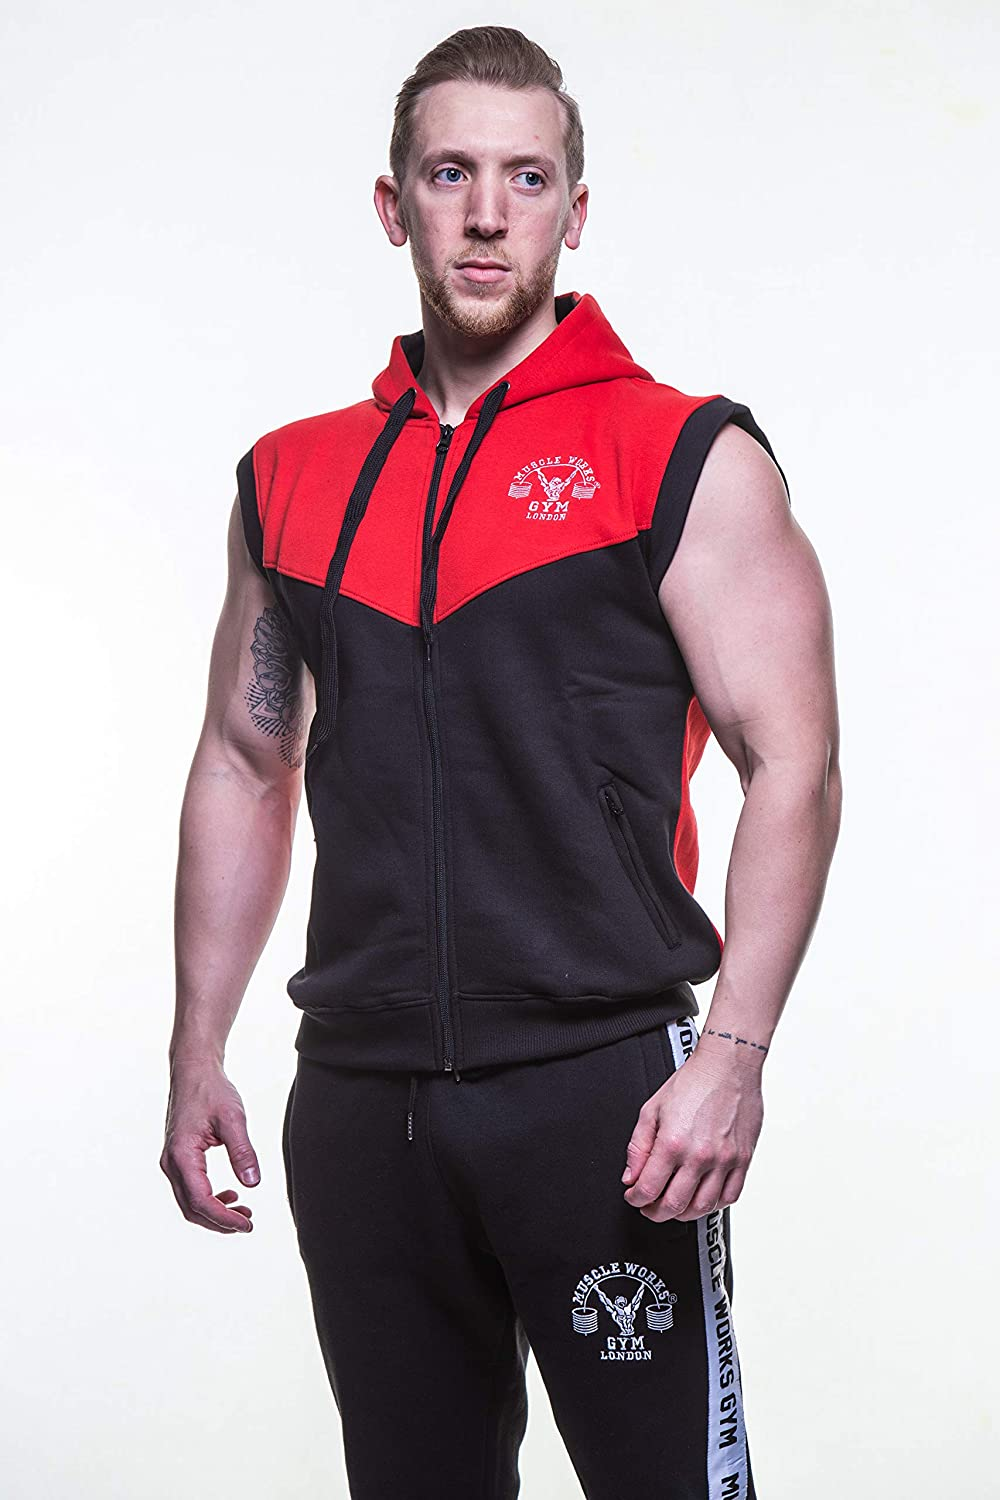 Muscle Works Gym Contrast Sleeveless Hoodie MMA Boxing Gym T Shirt Men BOXE Vest UFC Fleece Red Black